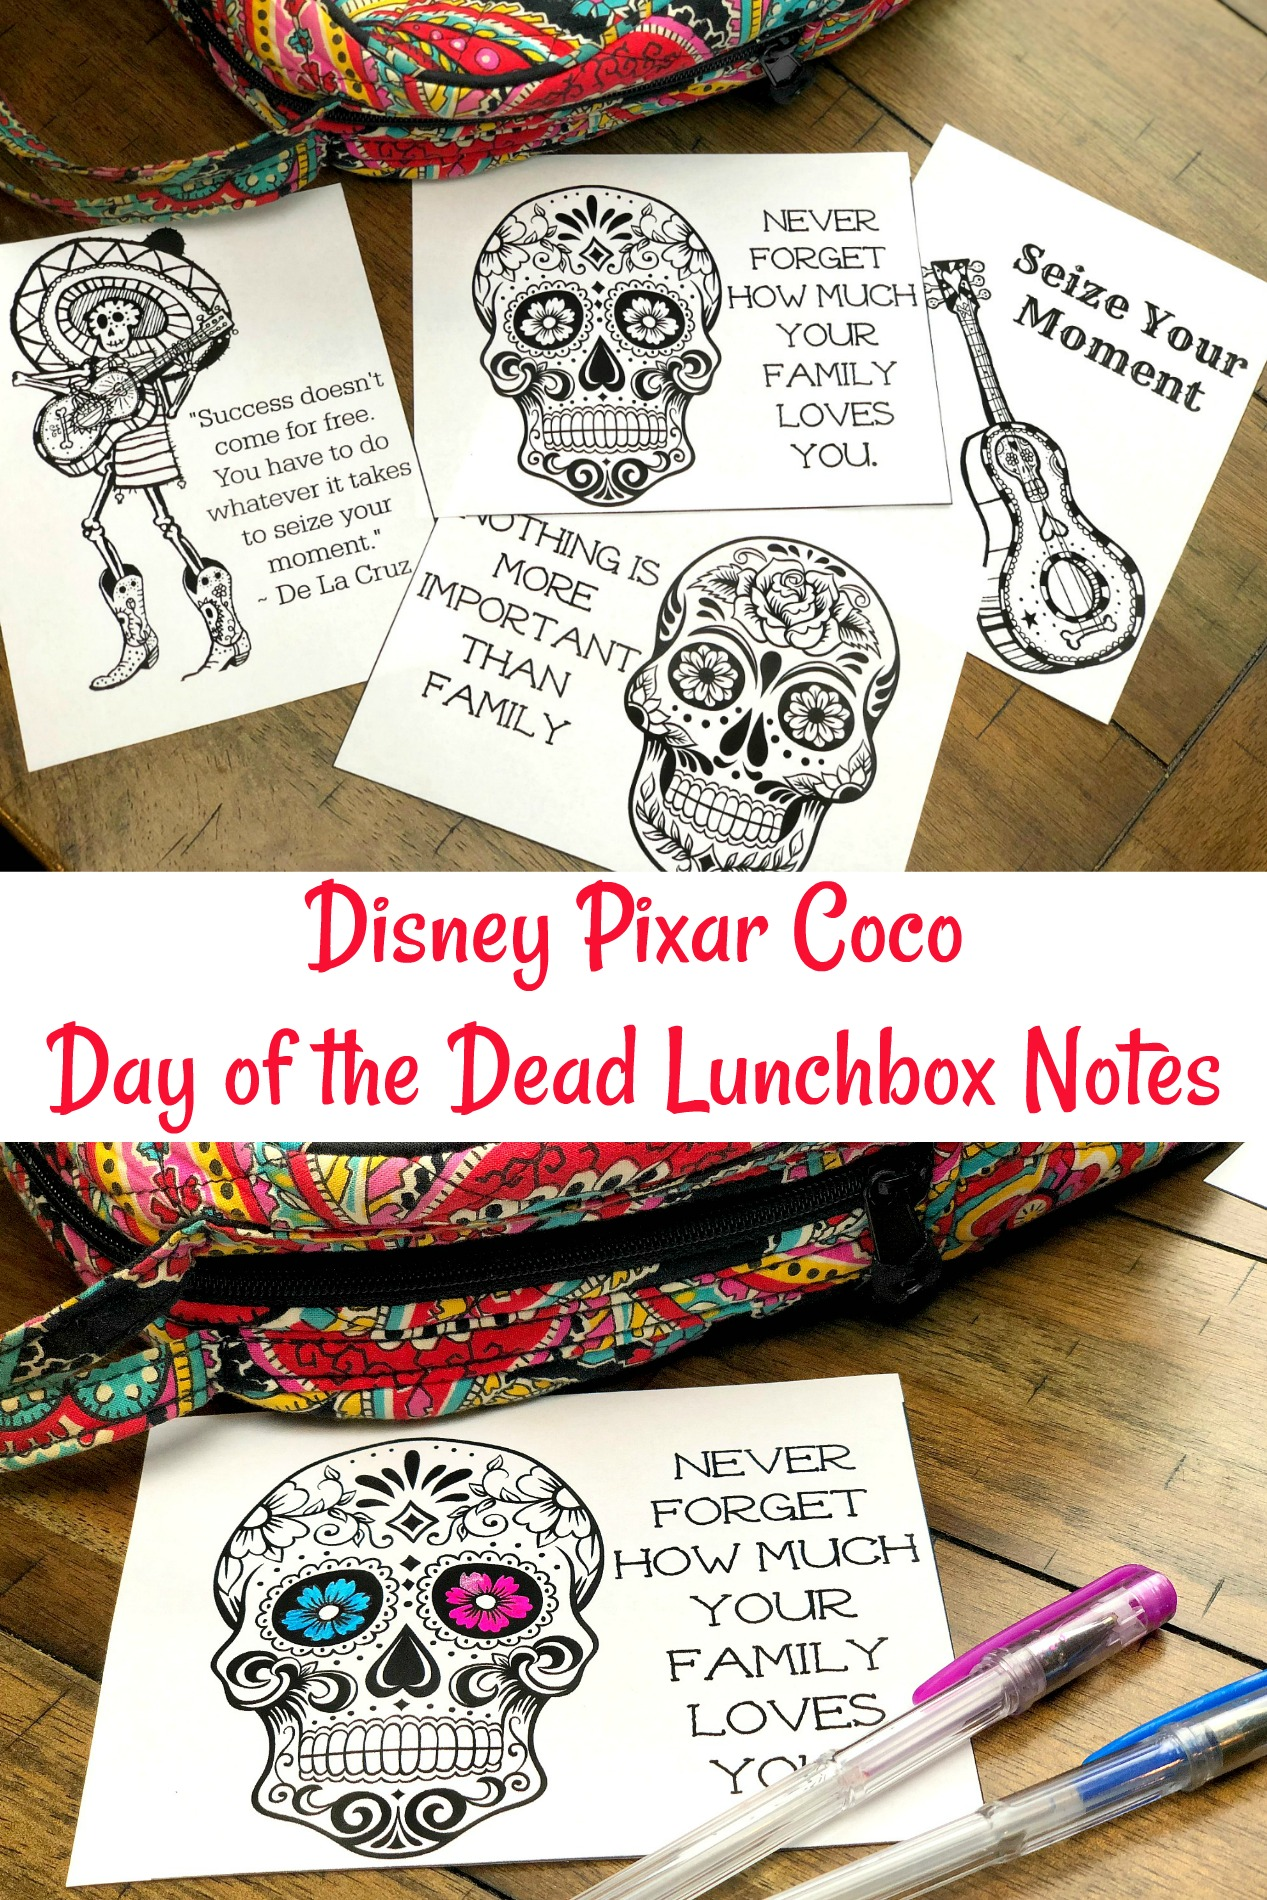 Disney Pixar Coco Lunchbox Notes-2